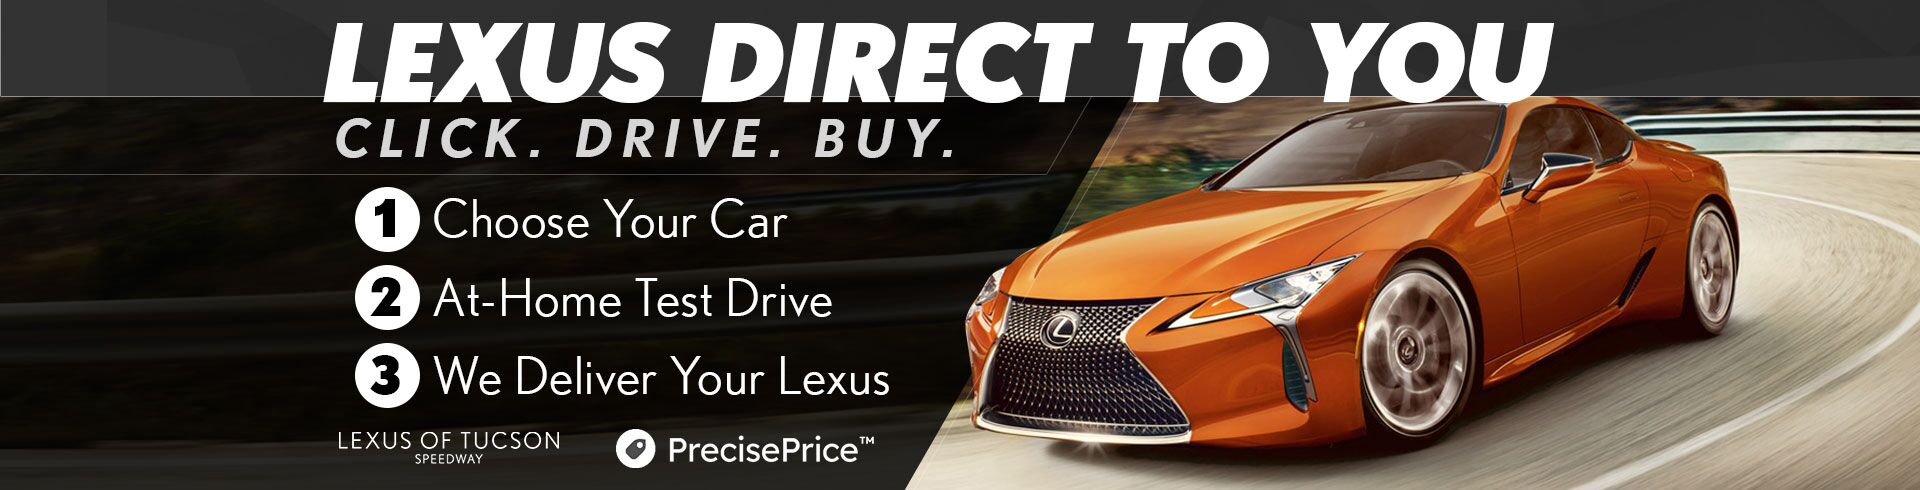 Lexus Direct to You